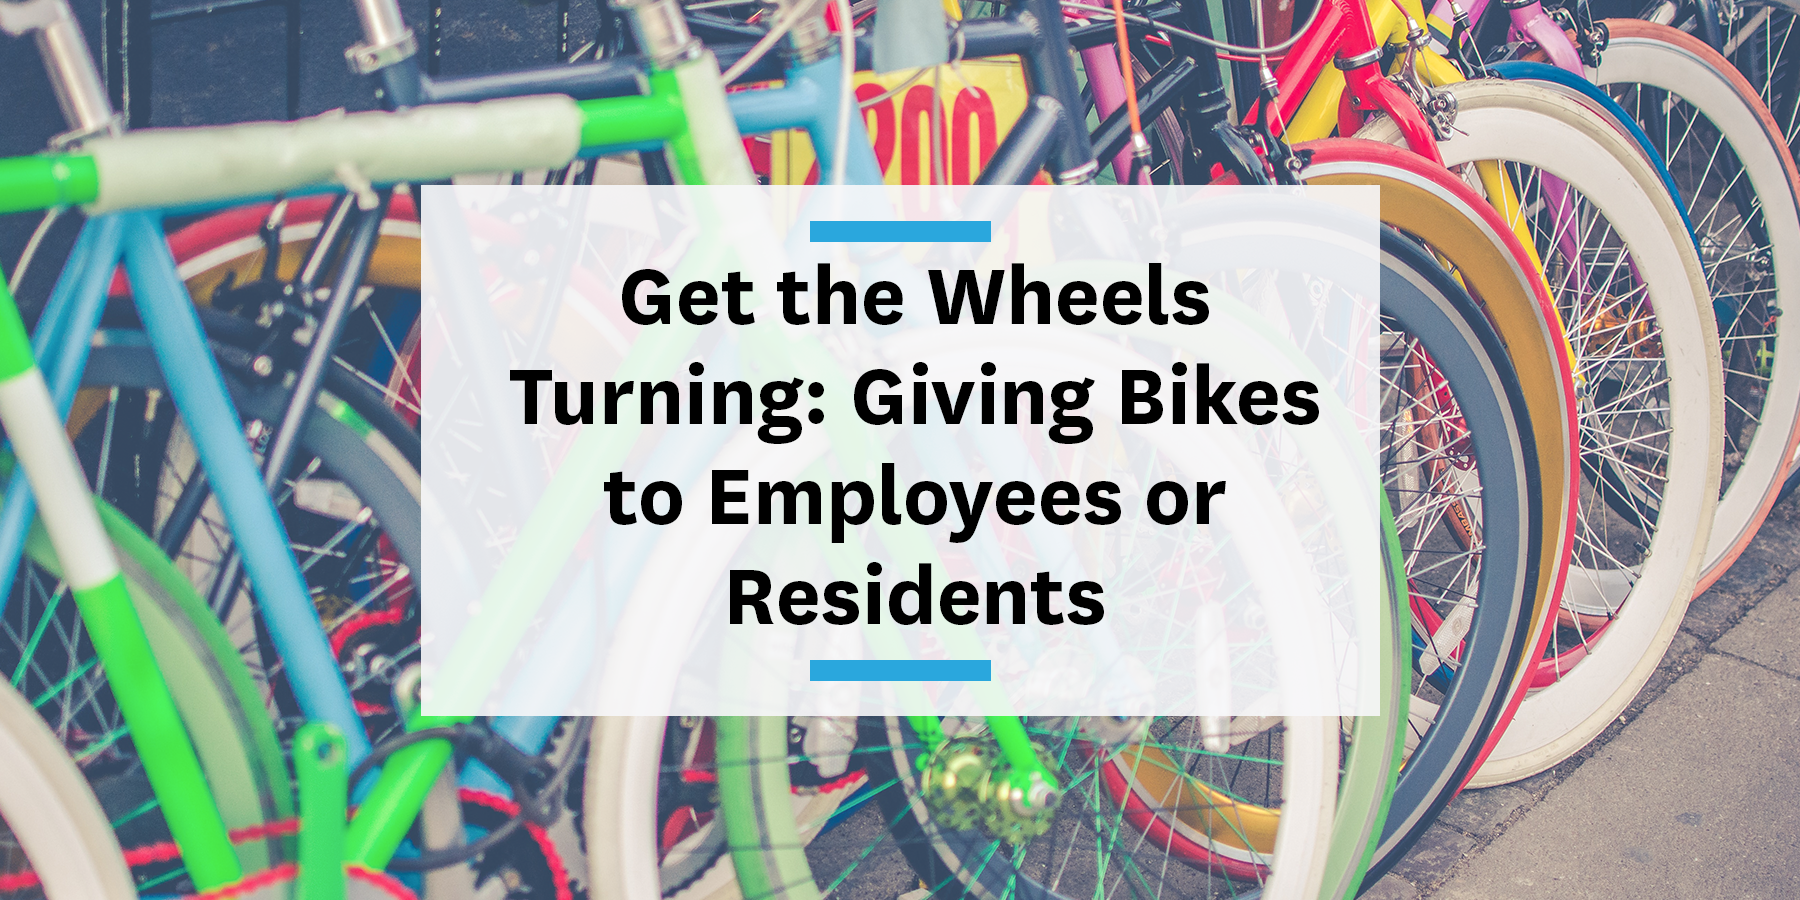 Giving bikes to employees or residents to bike to work and more sustainable commutes